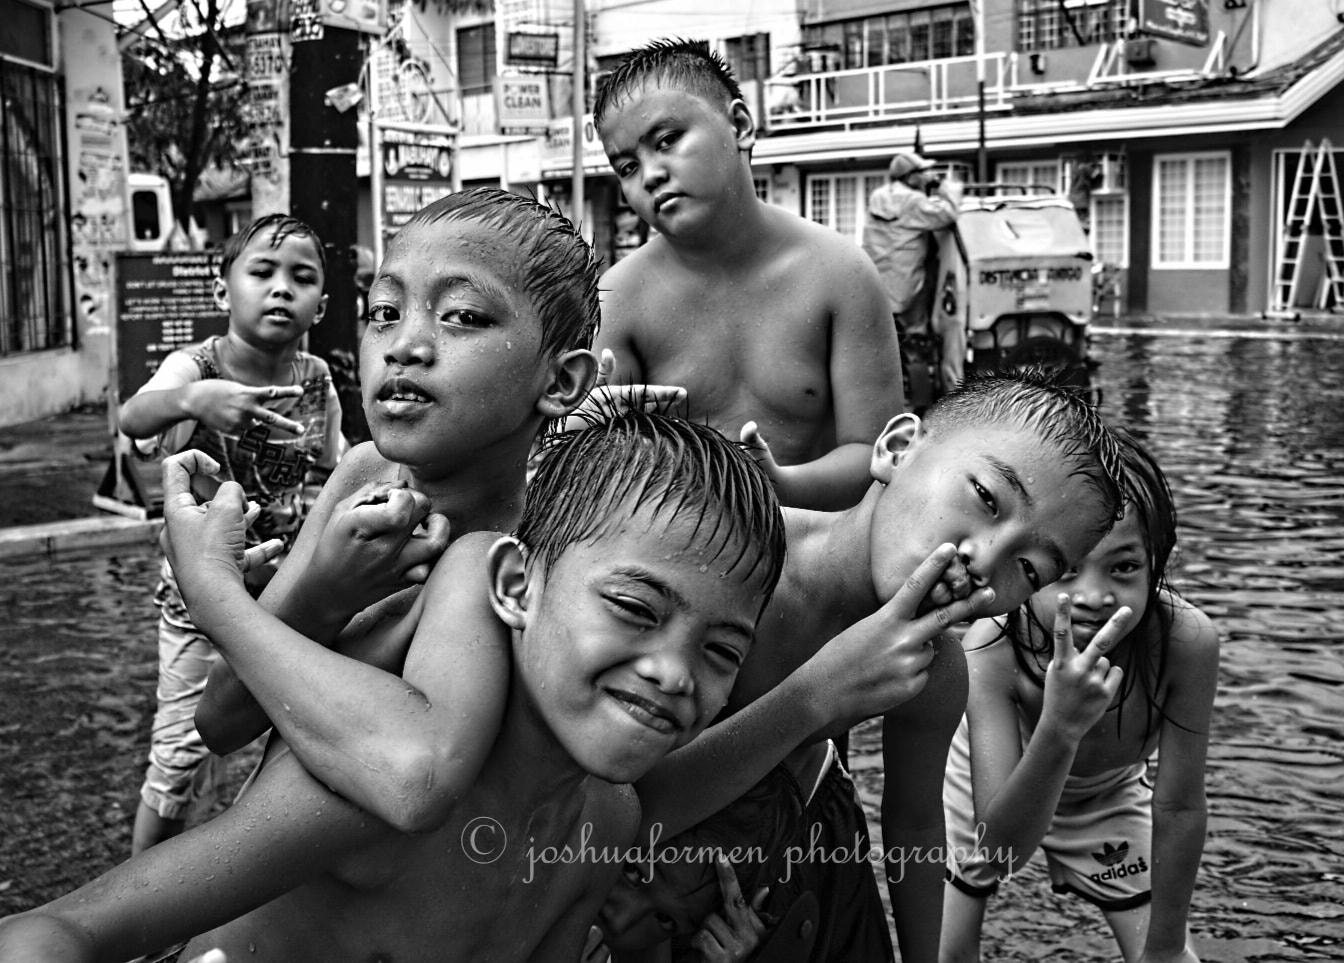 Photograph Street Photography in Manila  by Joshua Formentera on 500px